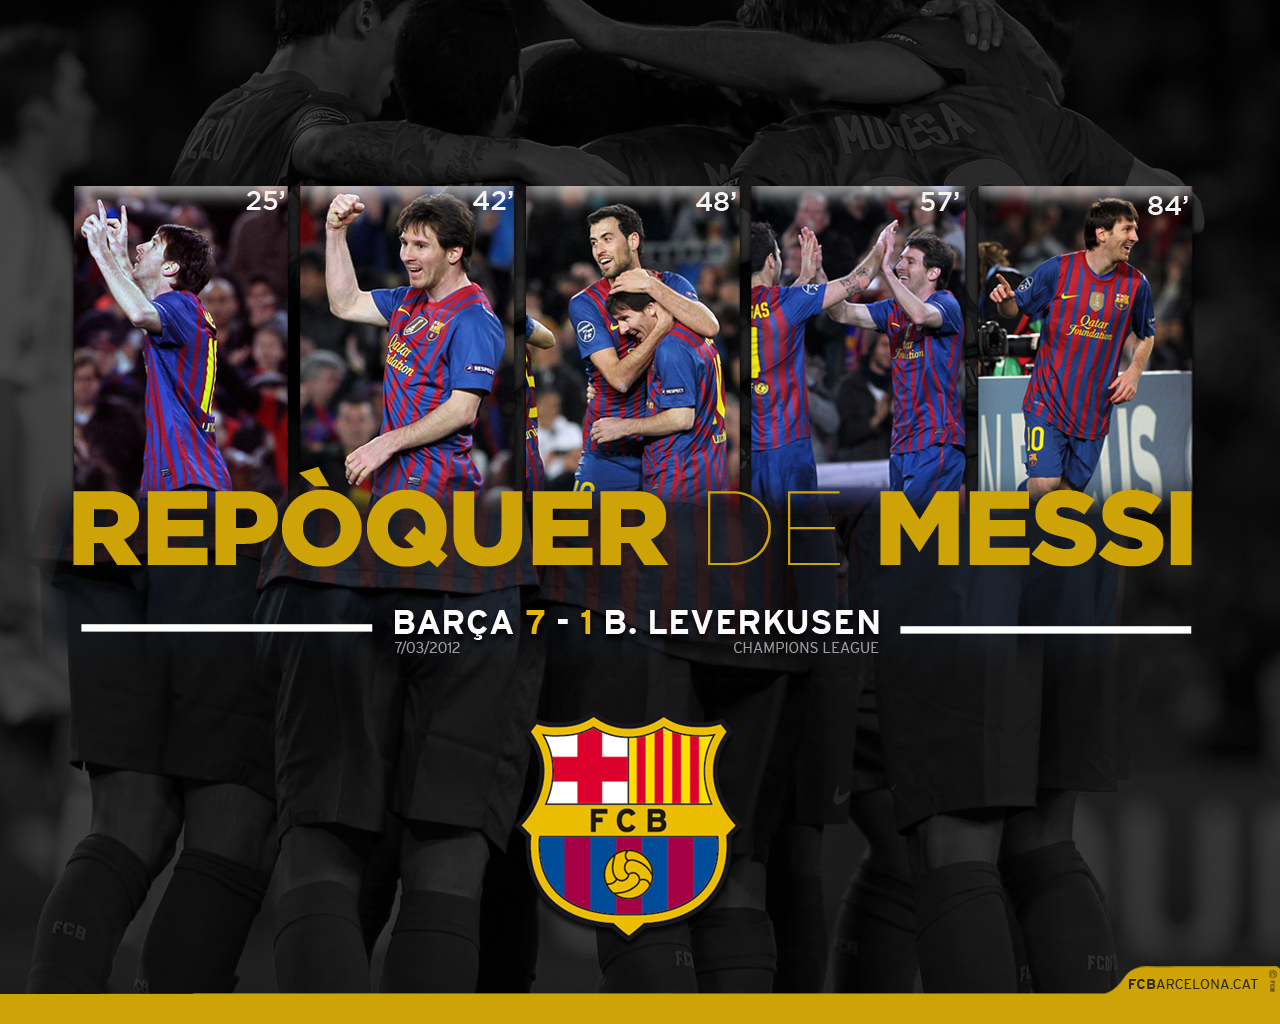 Download The Wallpaper Of Messis Five Goal Performance